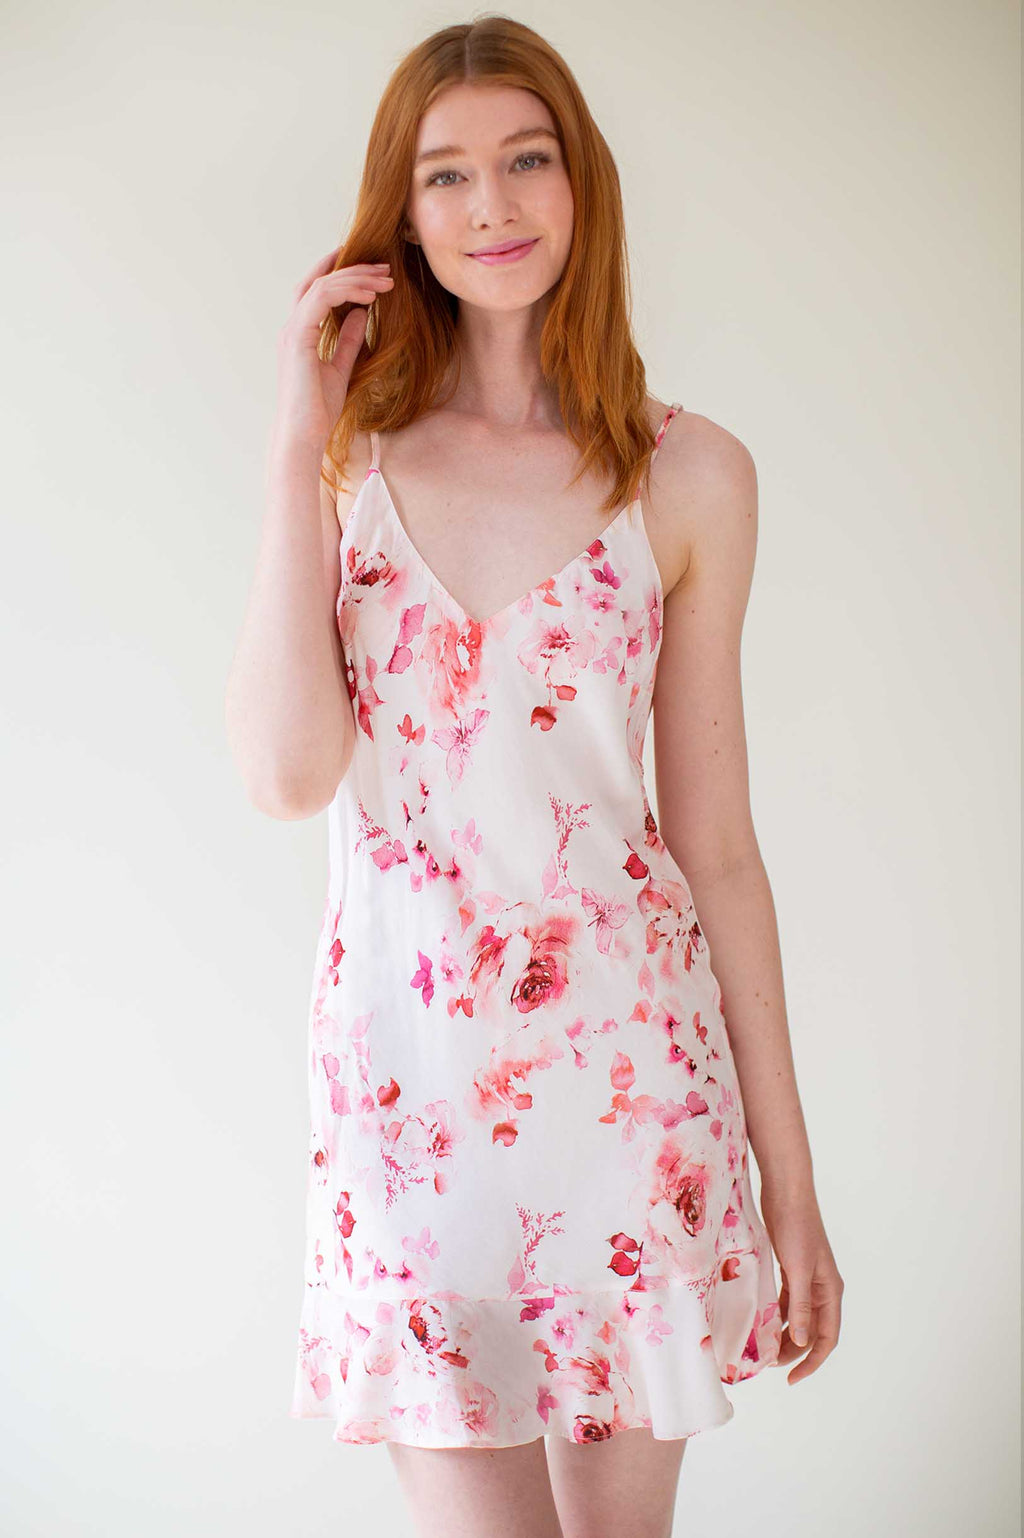 Botanical love Flounce Bias cut slip dress in Pink floral